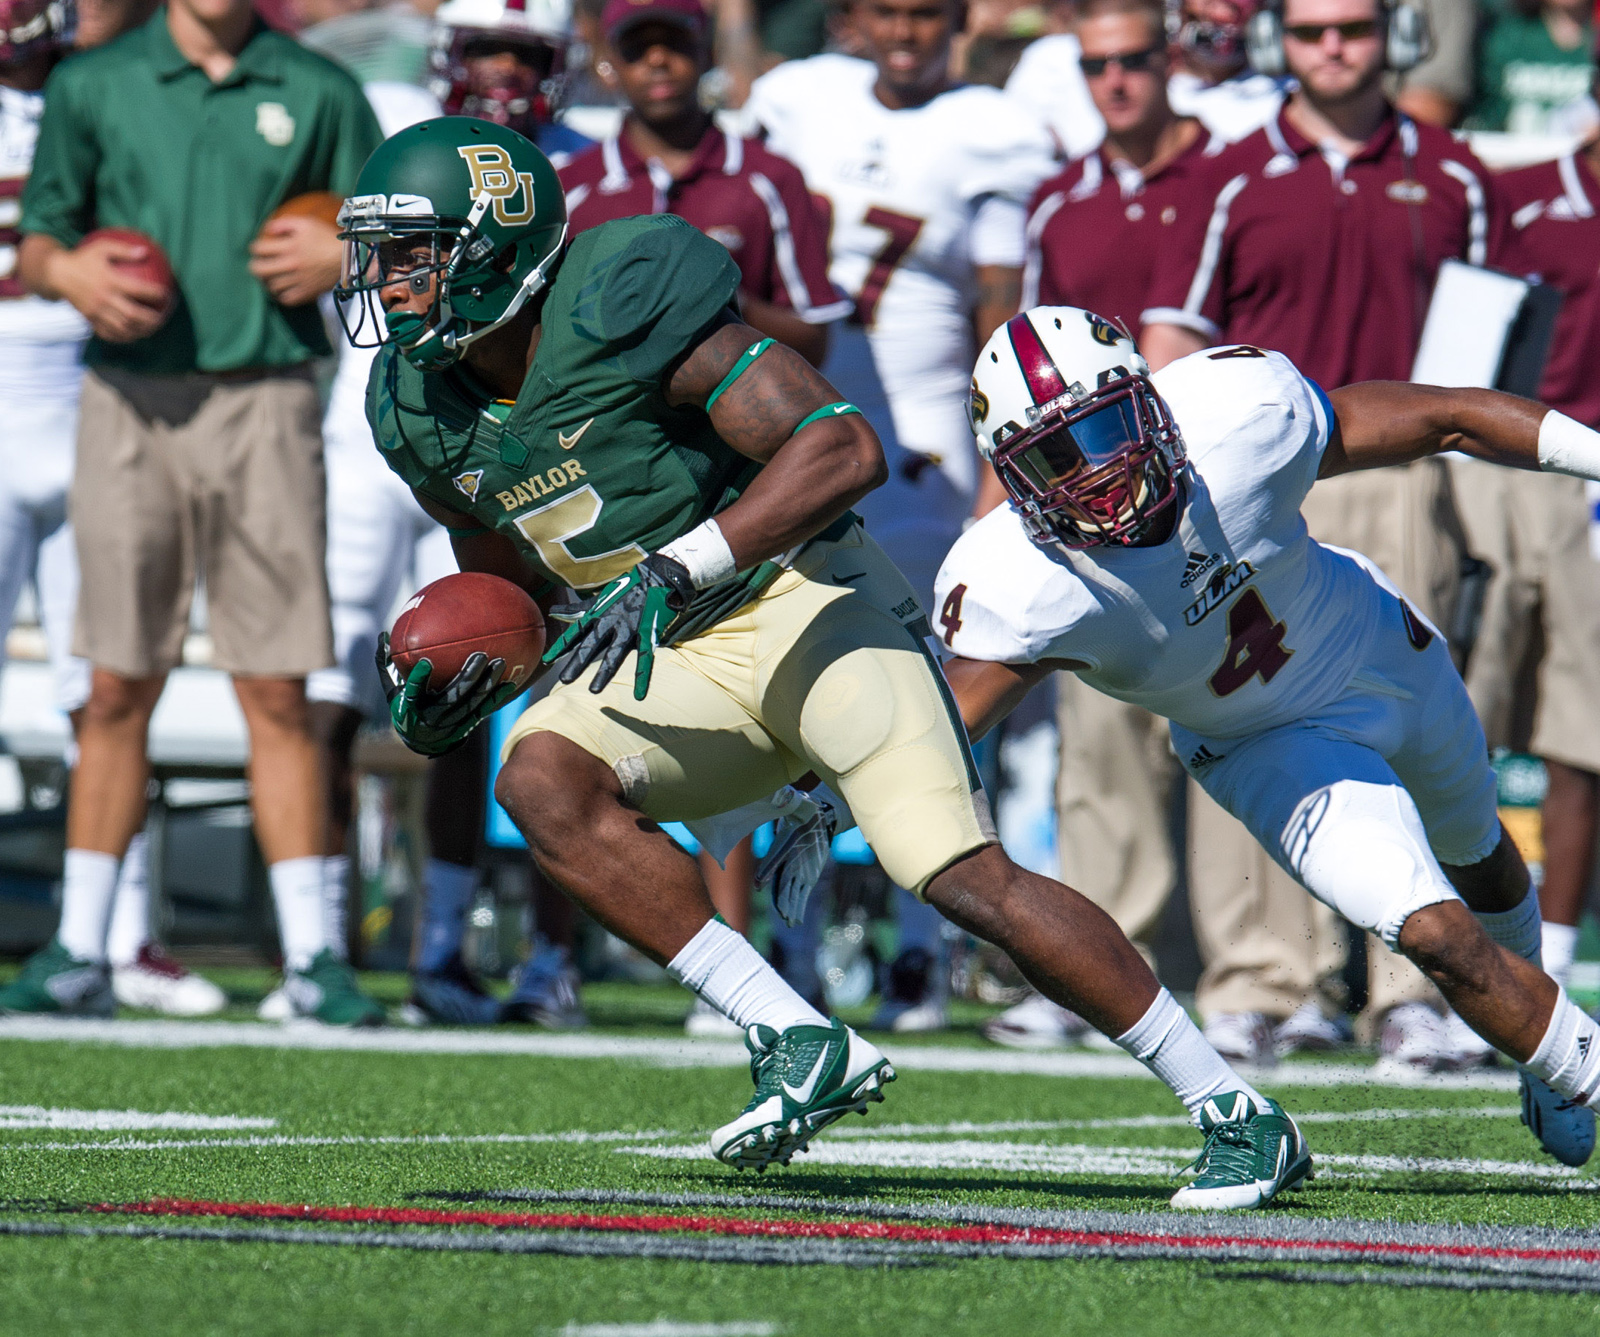 Baylor Bears wide receiver Antwan Goodley (5) eludes Louisiana Monroe Warhawks cornerback Rob'Donovan Lewis (4) during the game at Floyd Casey Stadium. The Bears defeated the Warhawks 70-7. (Jerome Miron/USA TODAY Sports)